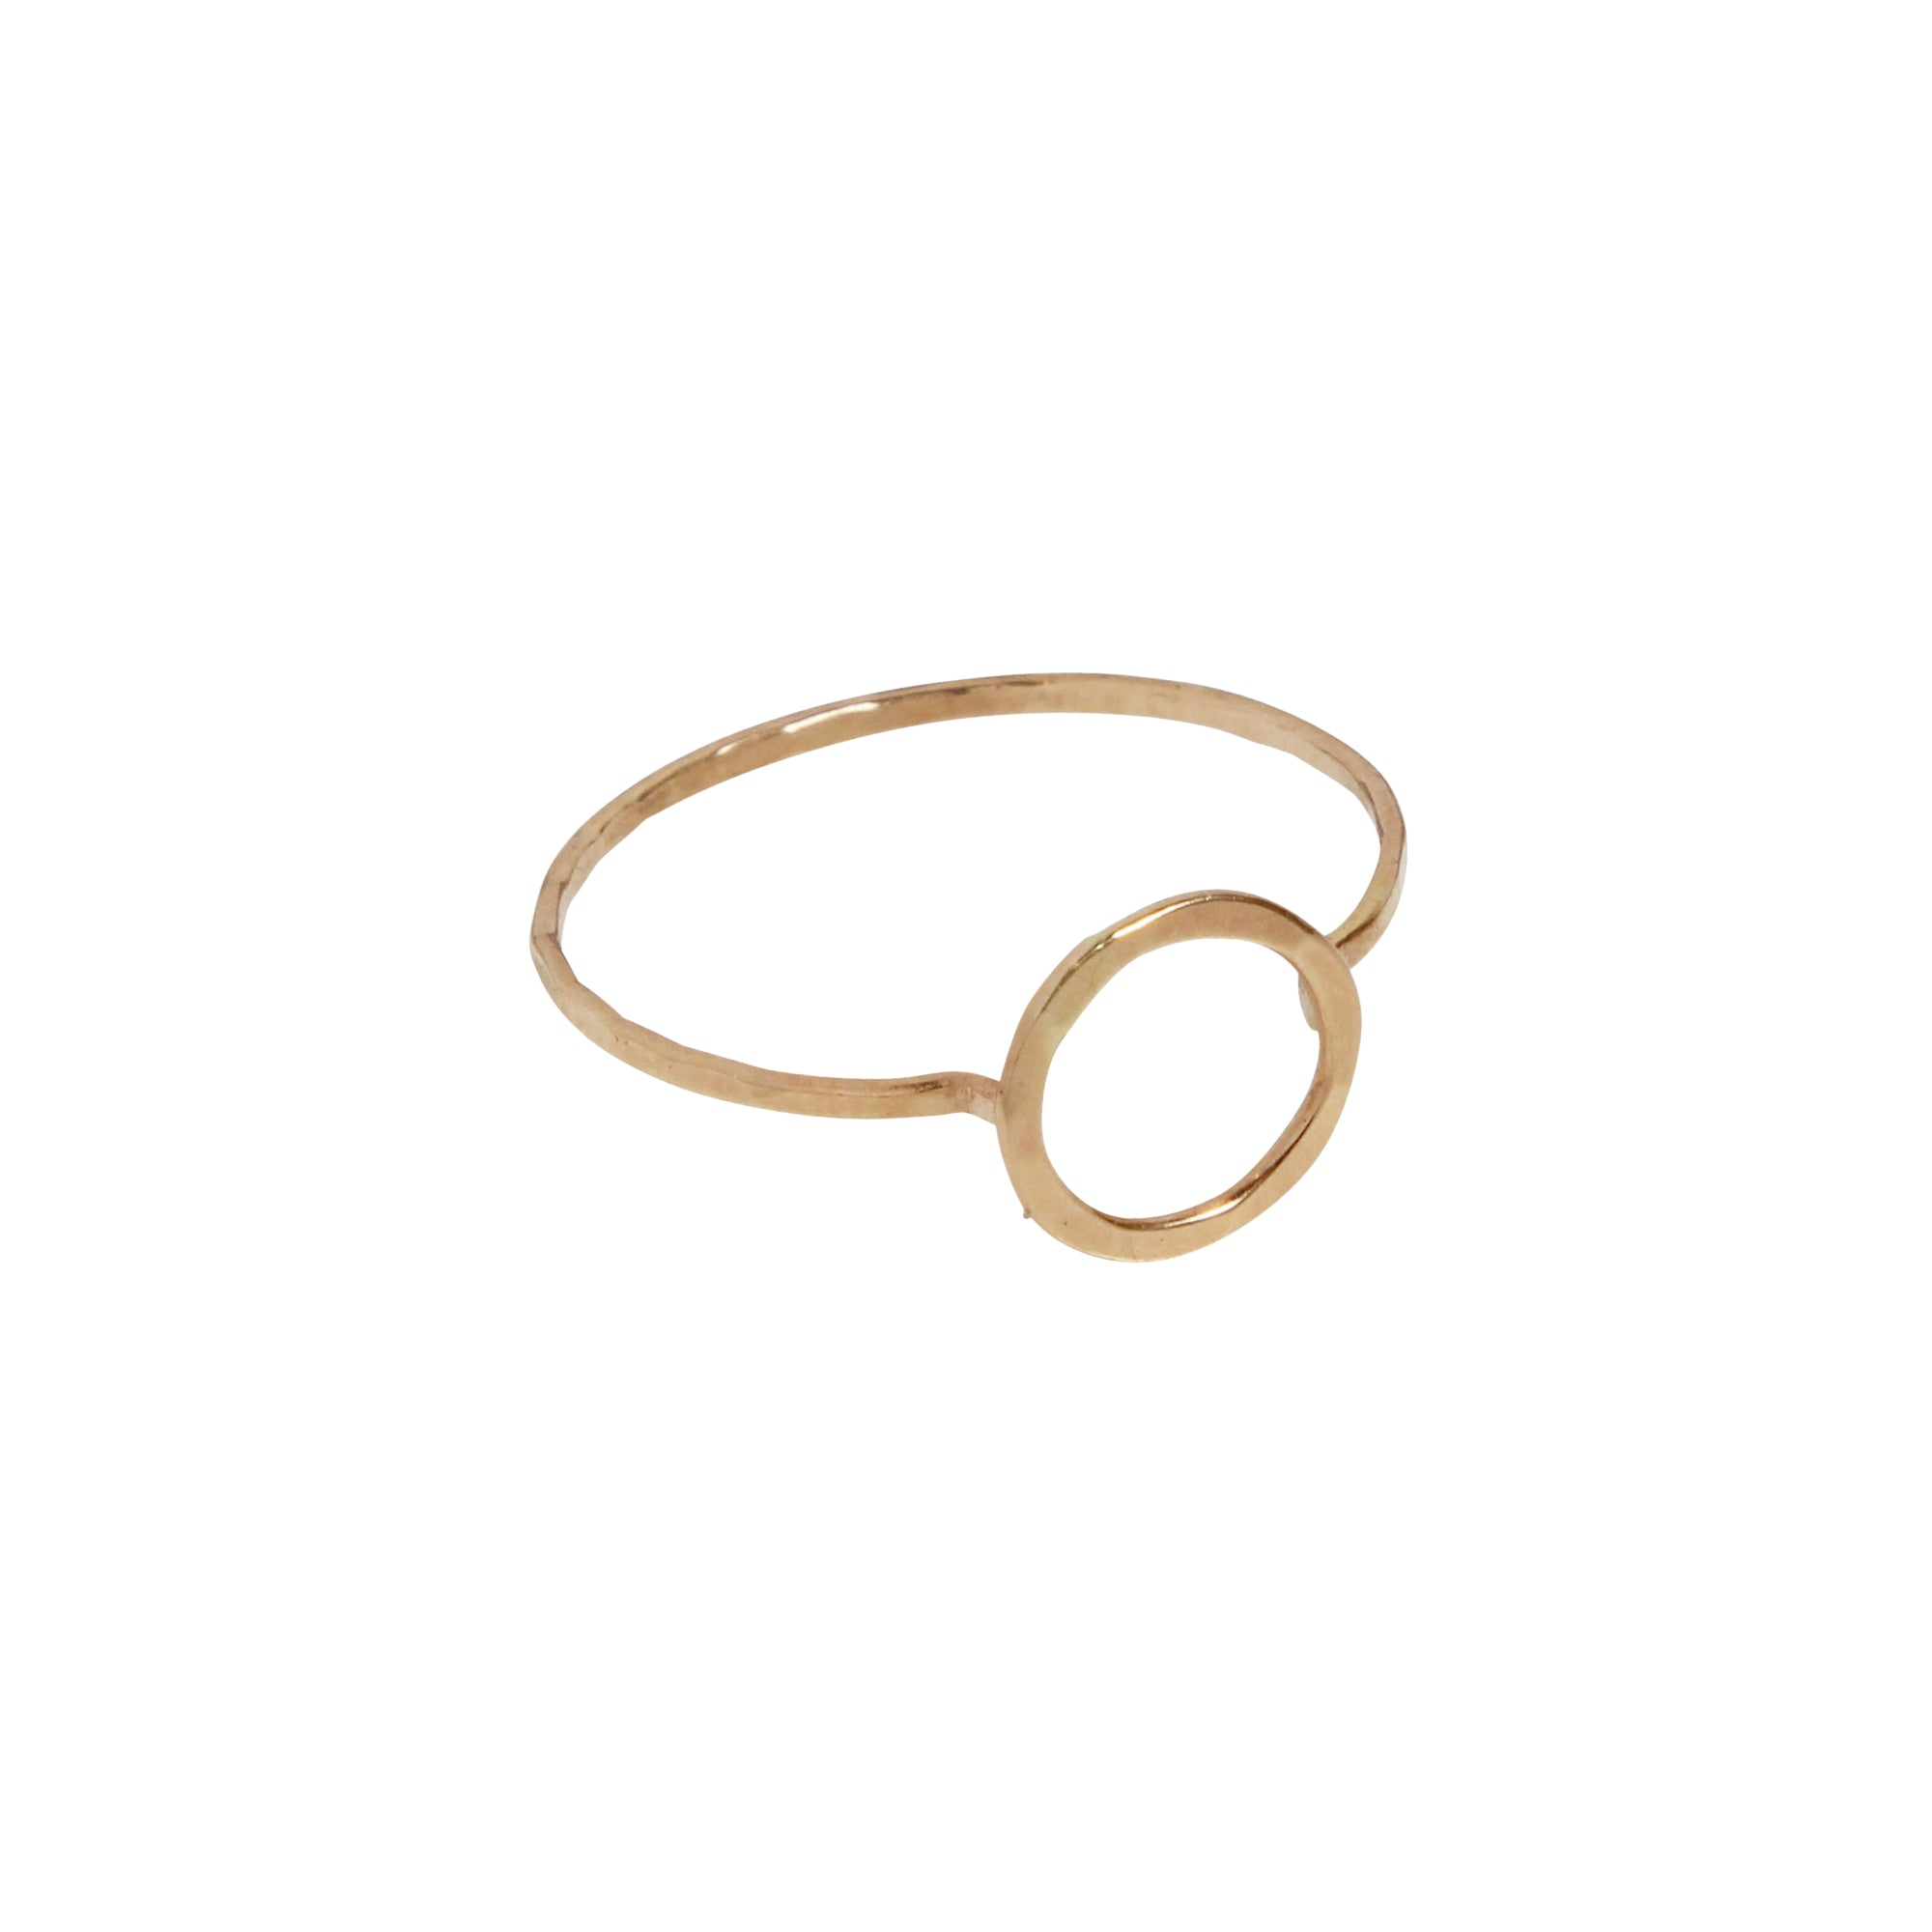 gold Circle Ring by Melissa joy manning for broken English jewelry